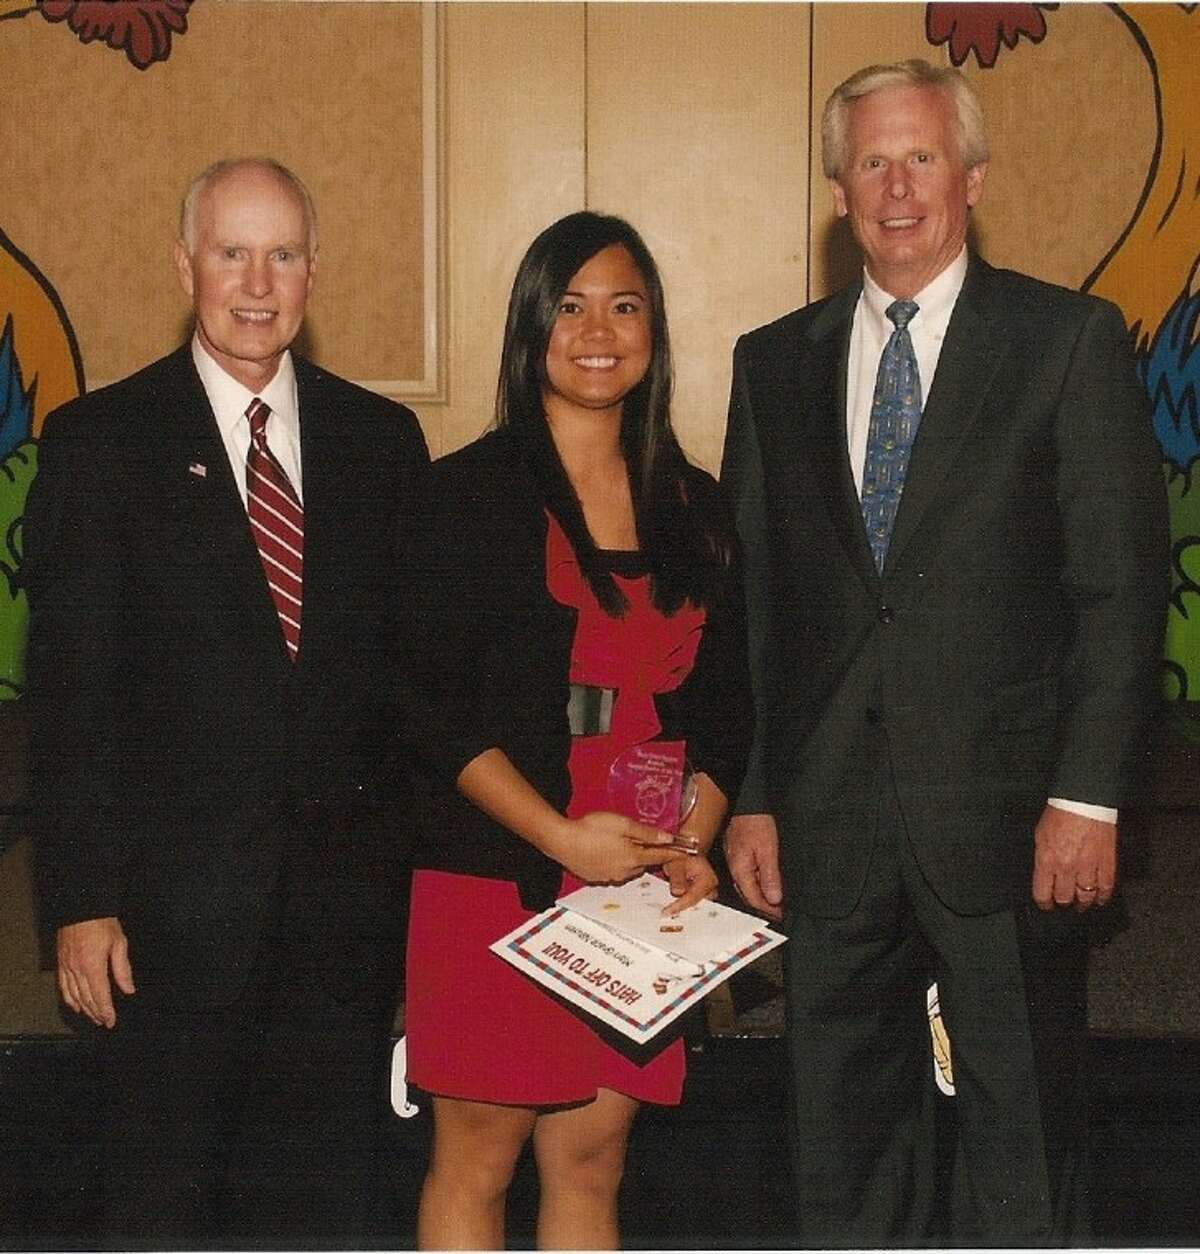 Kuehnle Elementary School art teacher Grace Nguyen was was named one of the 2012 Asian Chamber of Commerce's Teacher/Educator of the Year in addition to being selected as the Kuehnle Campus Teacher of the Year for the 2011-12 school year.